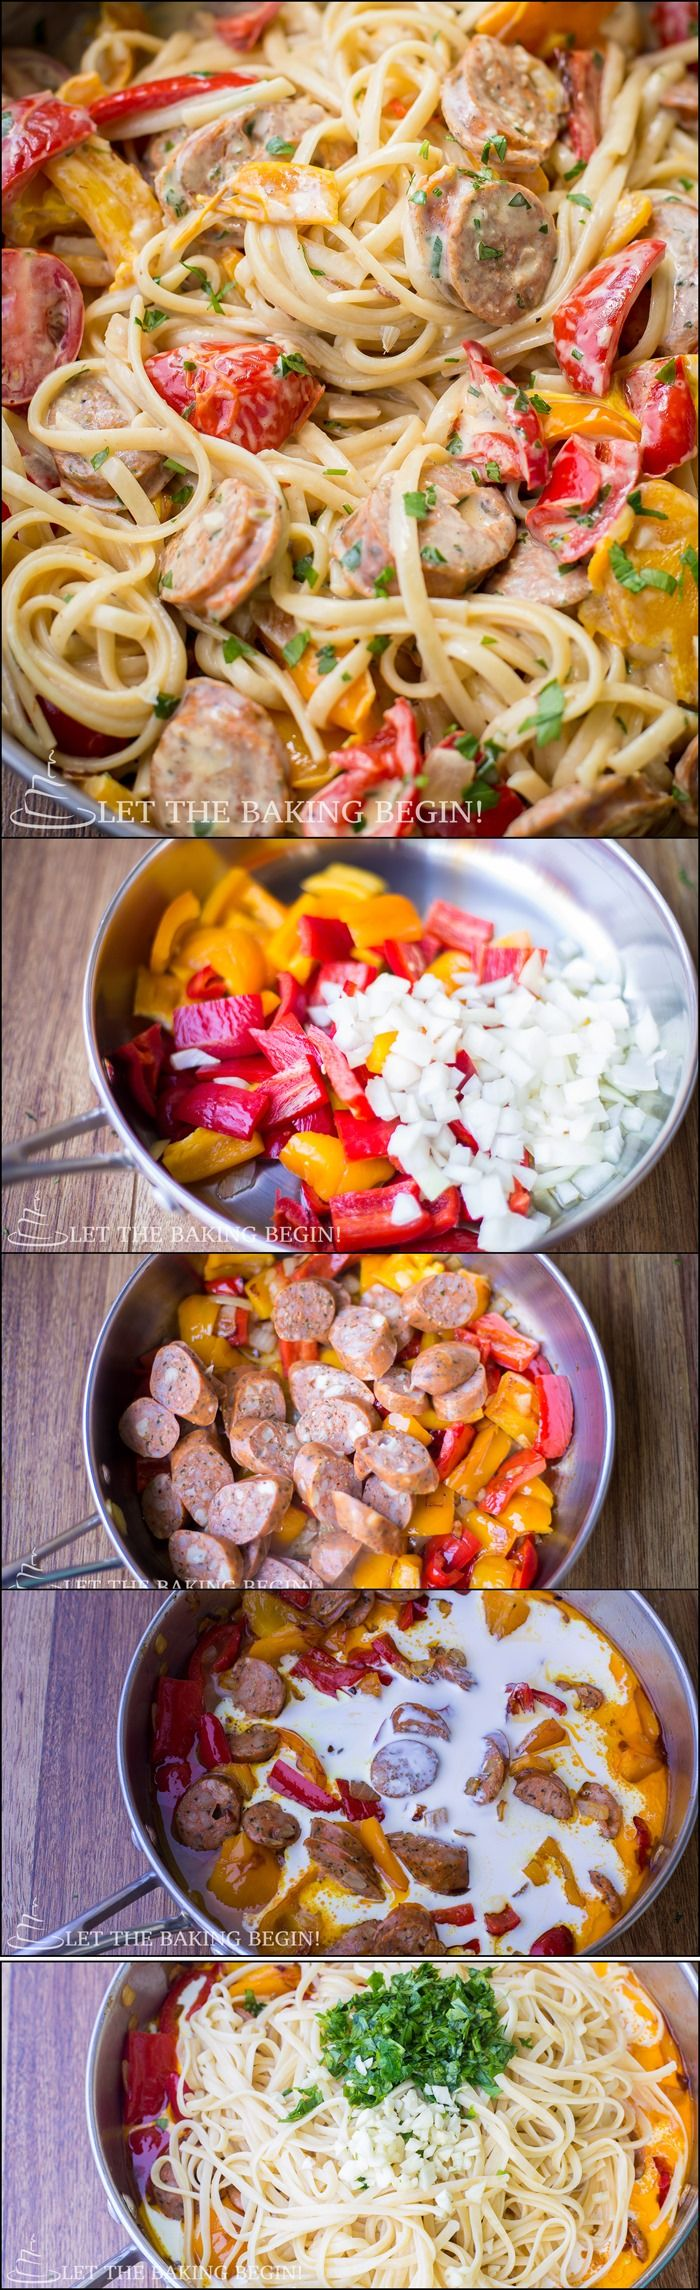 womens sunglasses Quick  amp  Delicious  Sausage Pepper Fettuccine Skillet is a Dinner That  s Sure to Impress Your Family  by Let the Baking Begin Blog